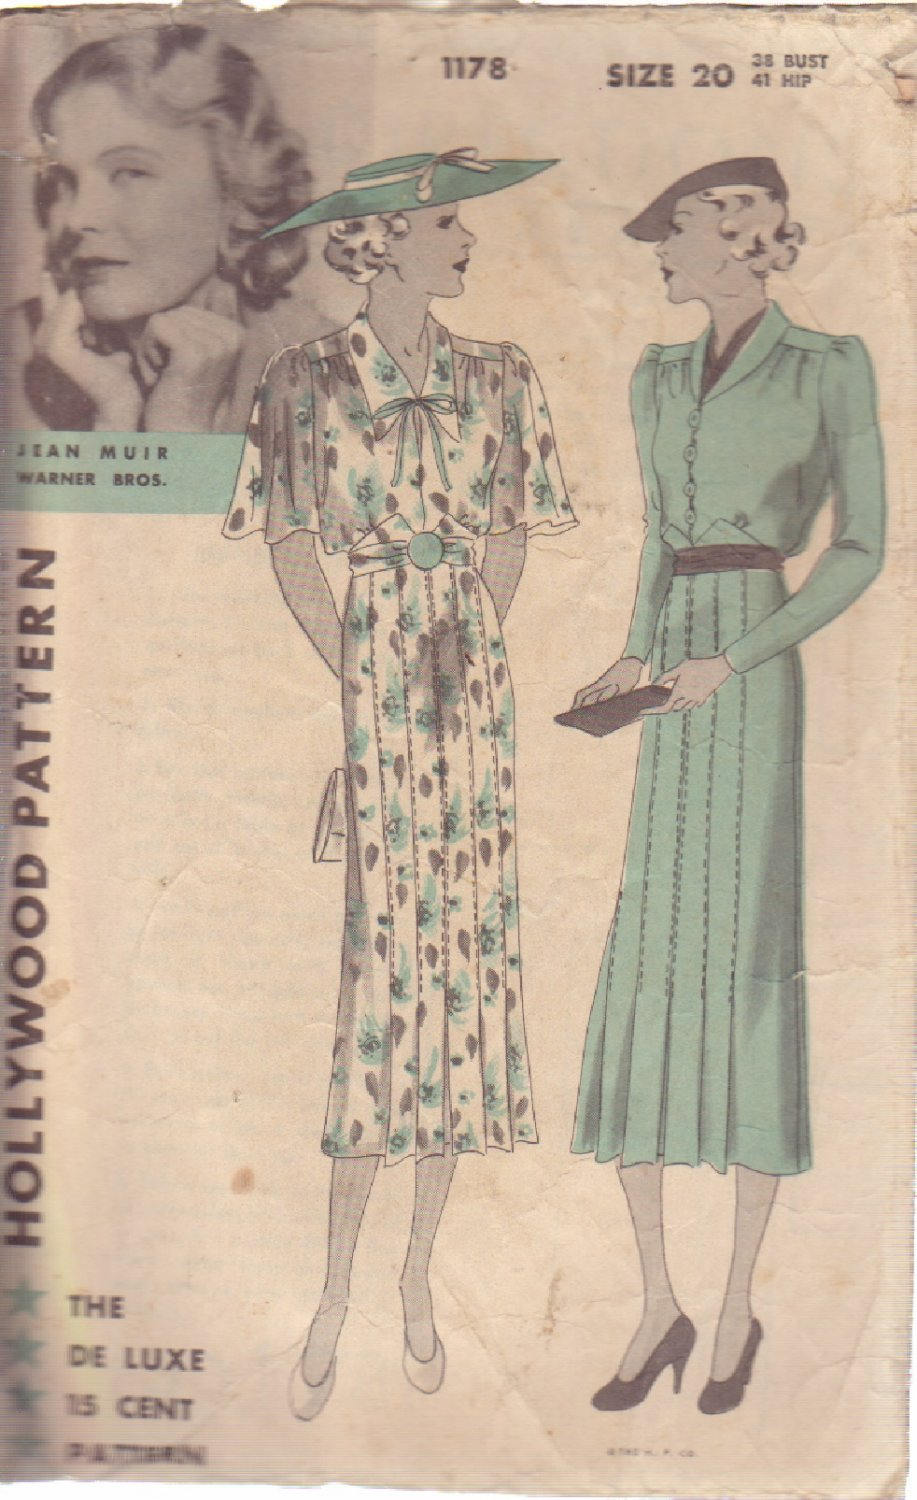 HOLLYWOOD PATTERN 1178 MISSES' 1 PC FROCK 2 VARIATIONS SIZE 20 JEAN MUIR